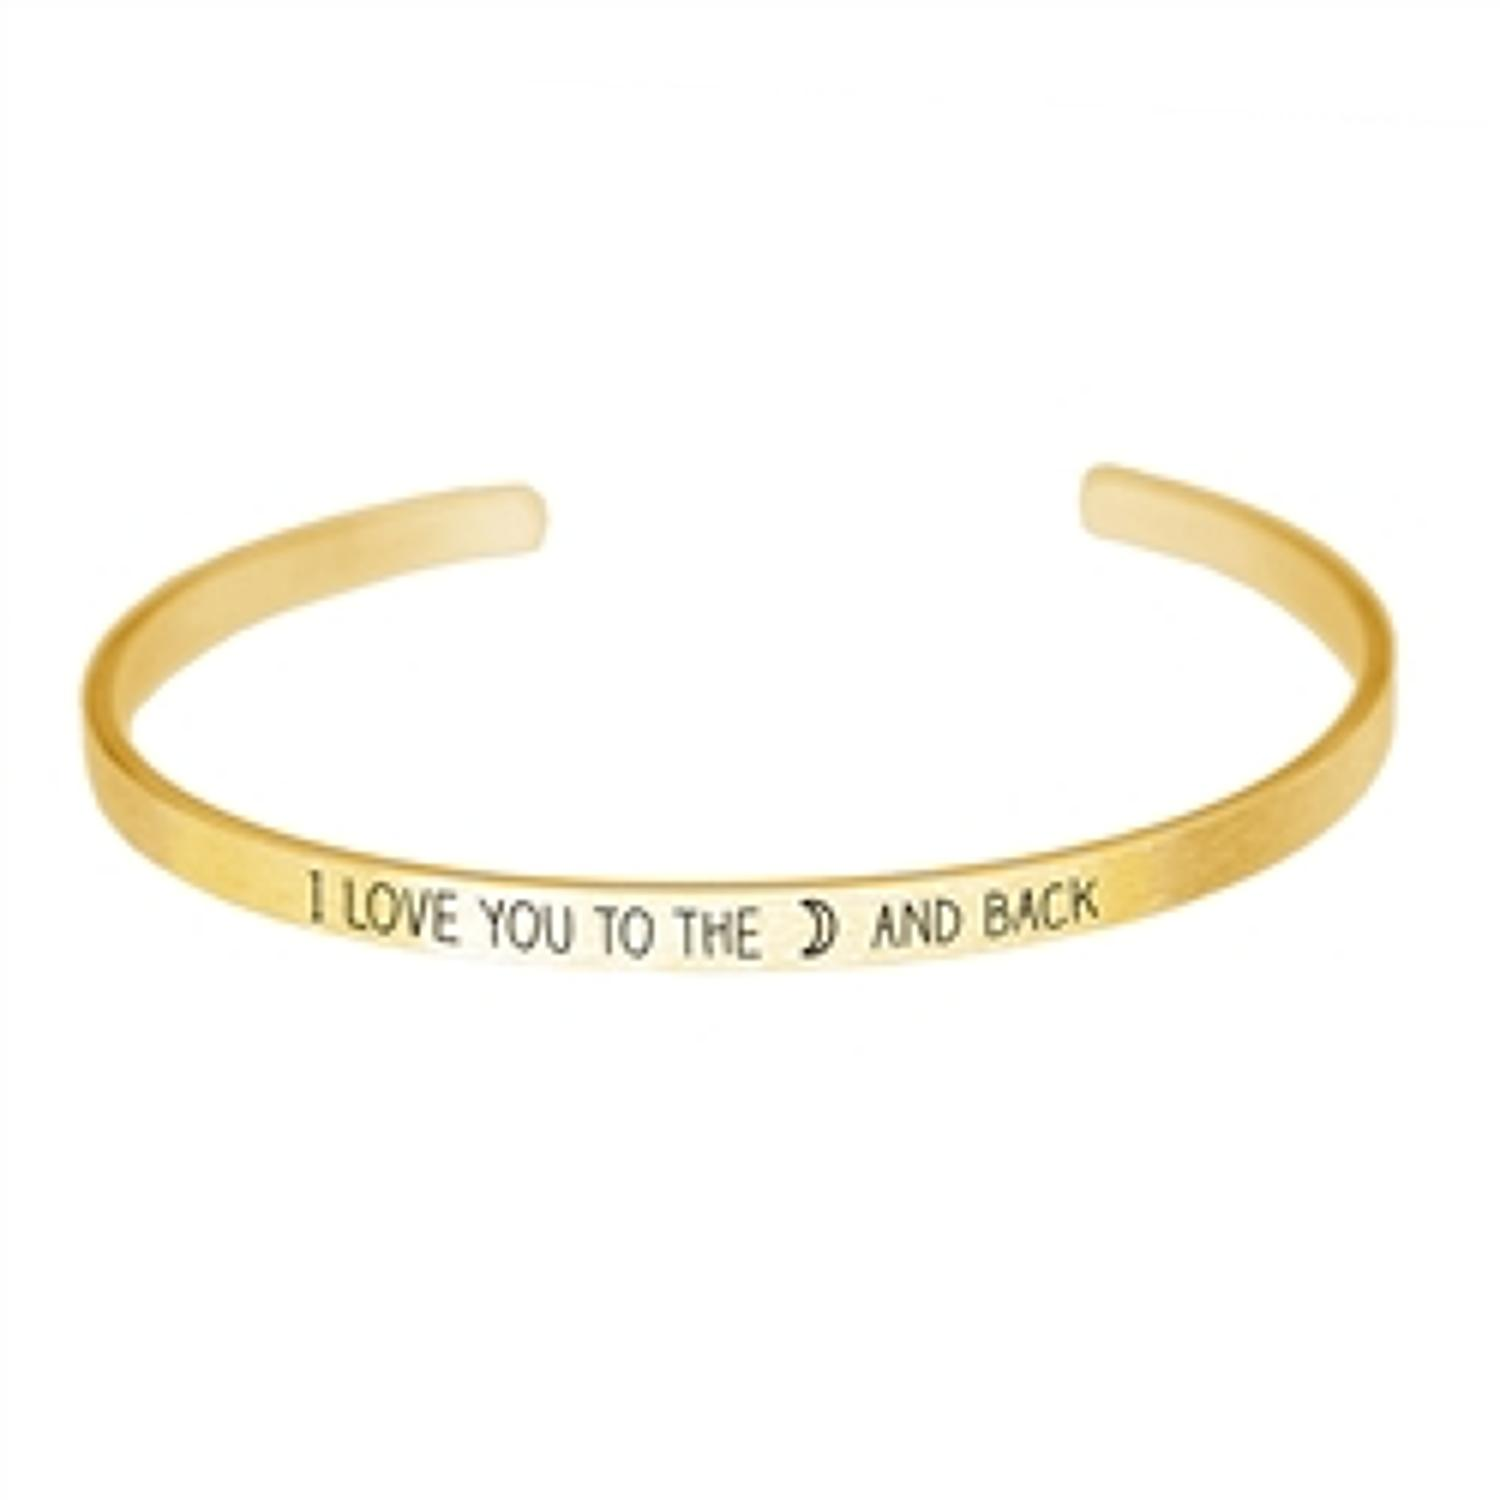 White Leaf - Love you to the moon and back gold finish bangle